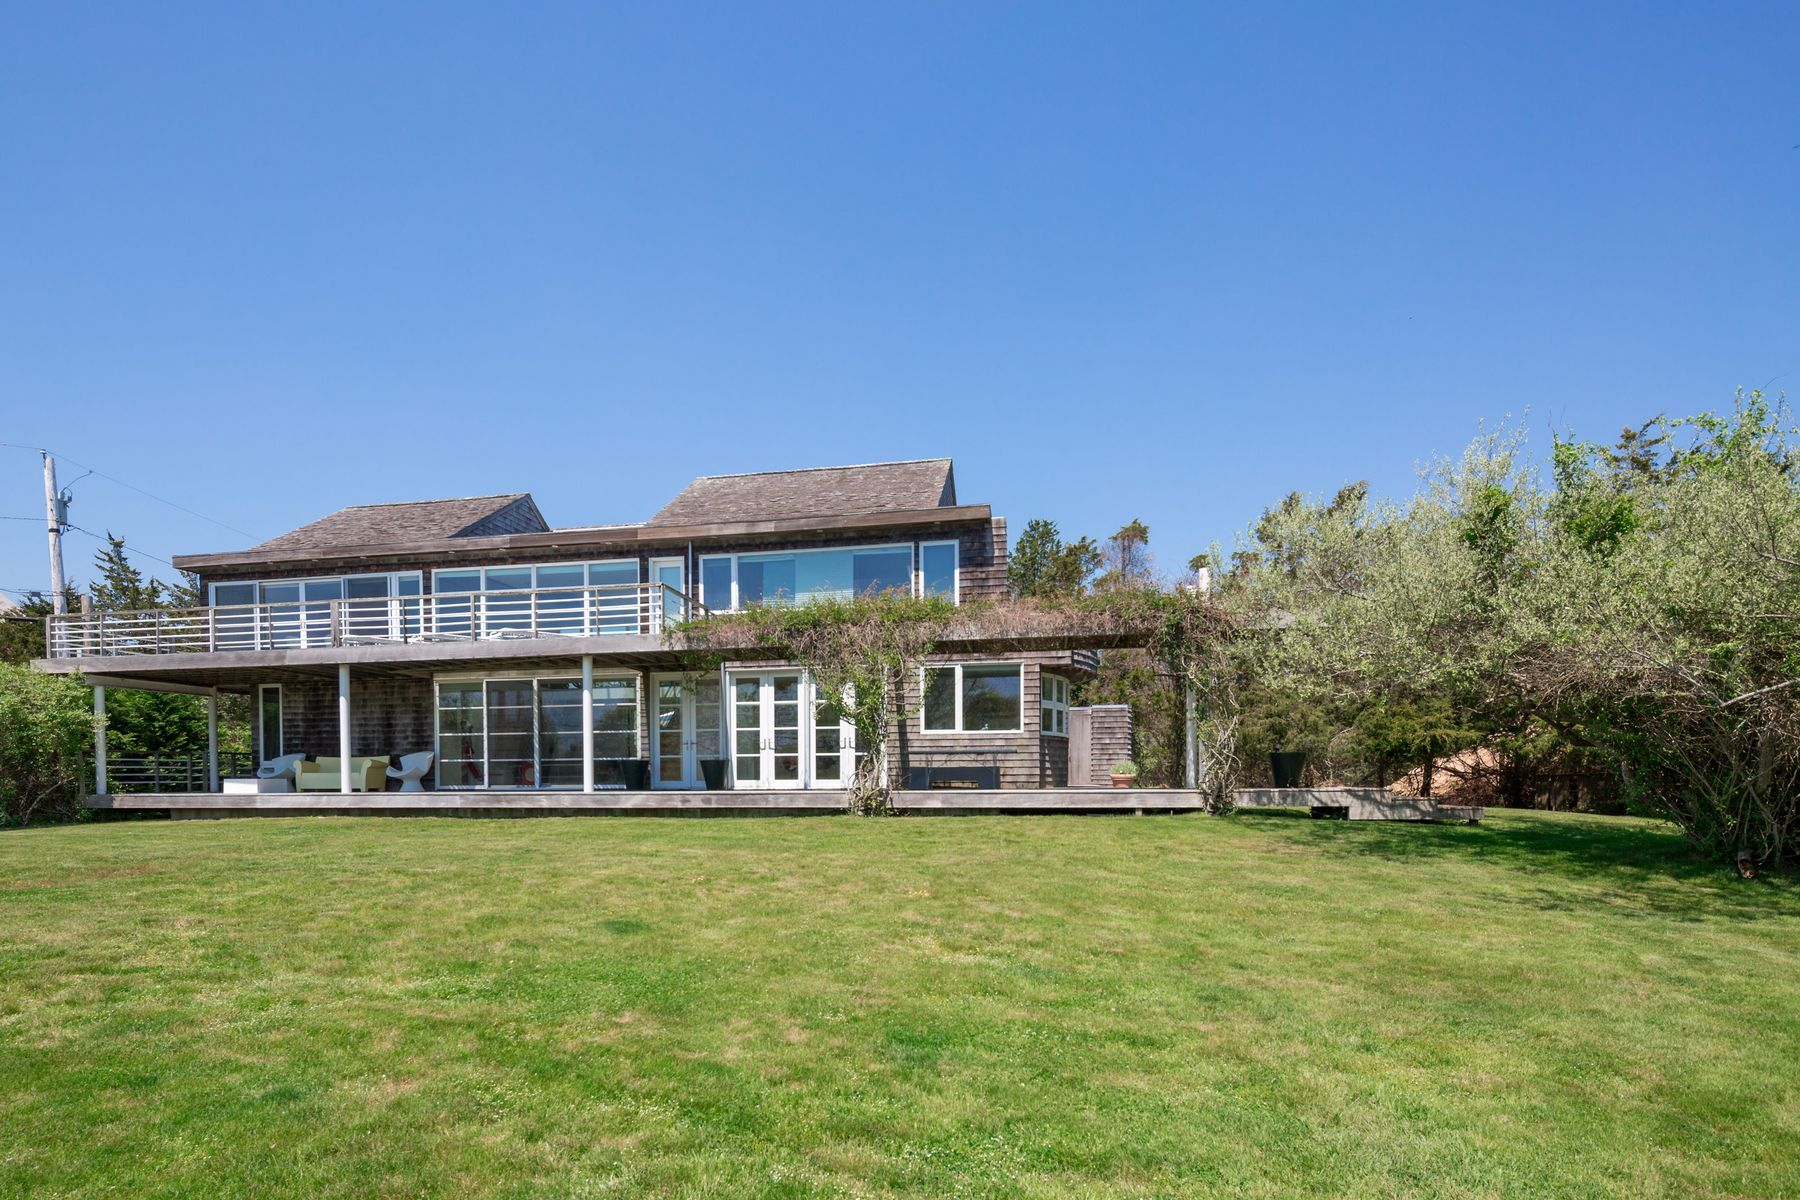 Single Family Home for Active at Ocean Views on Coveted Bluff Road 190 Bluff Road Amagansett, New York 11930 United States